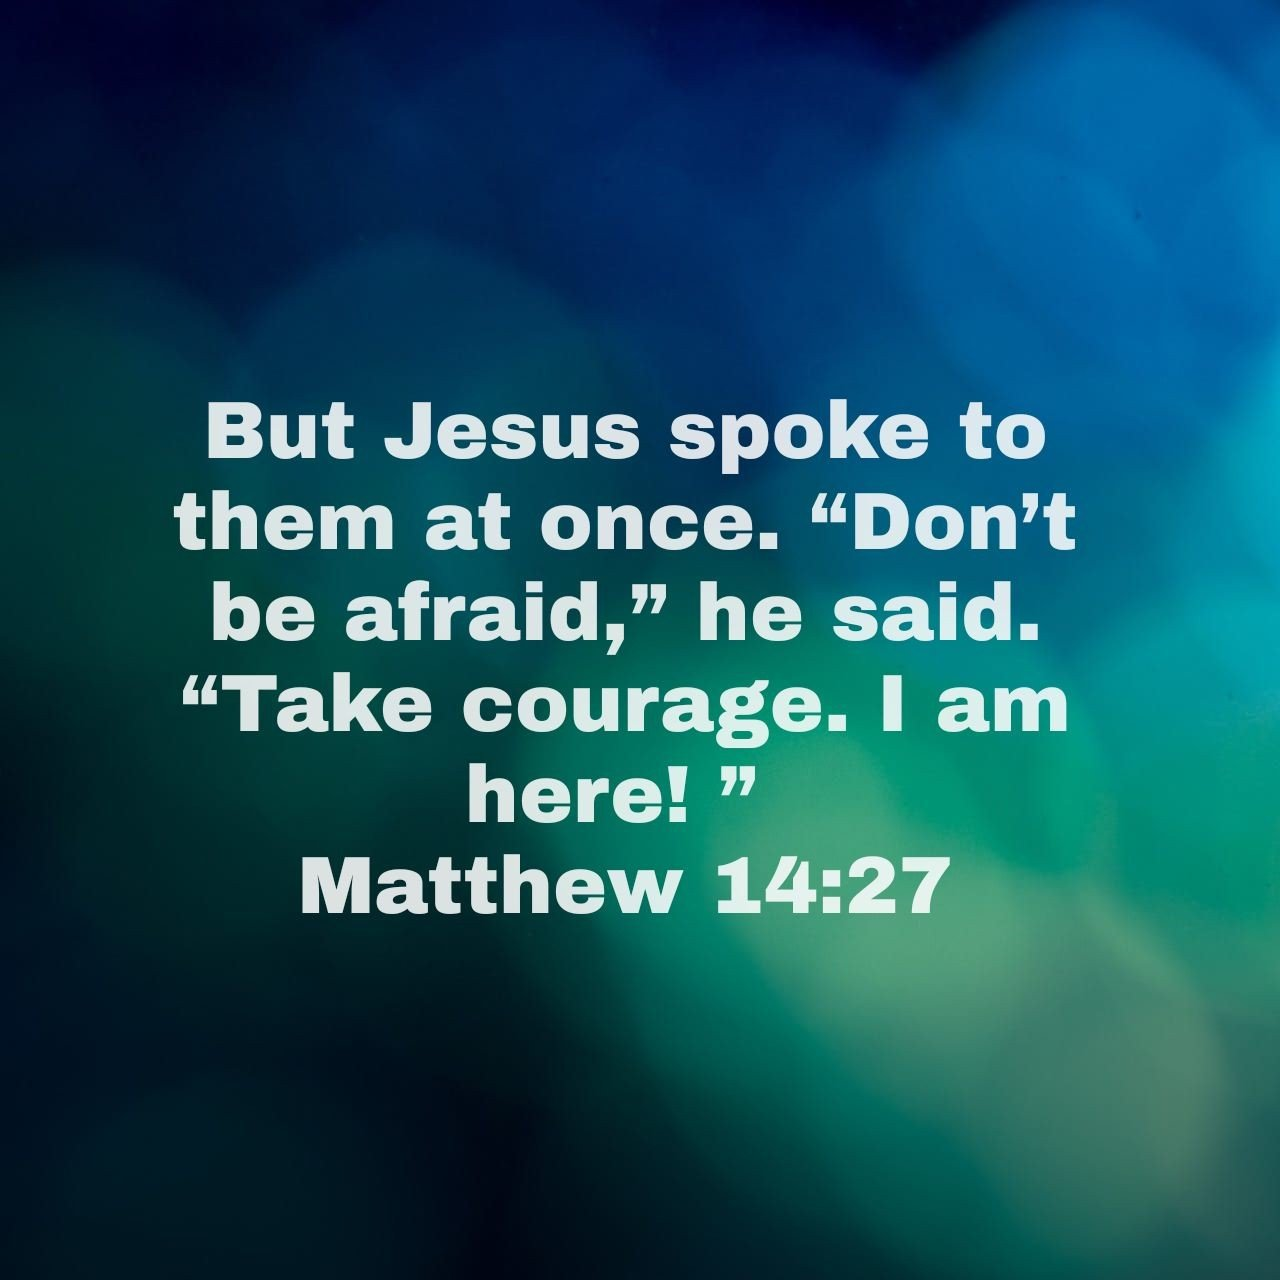 "But Jesus spoke to them at once. ""Don't be afraid,"" he said. ""Take courage. I am here! "" - Matthew 14:27 NLT"